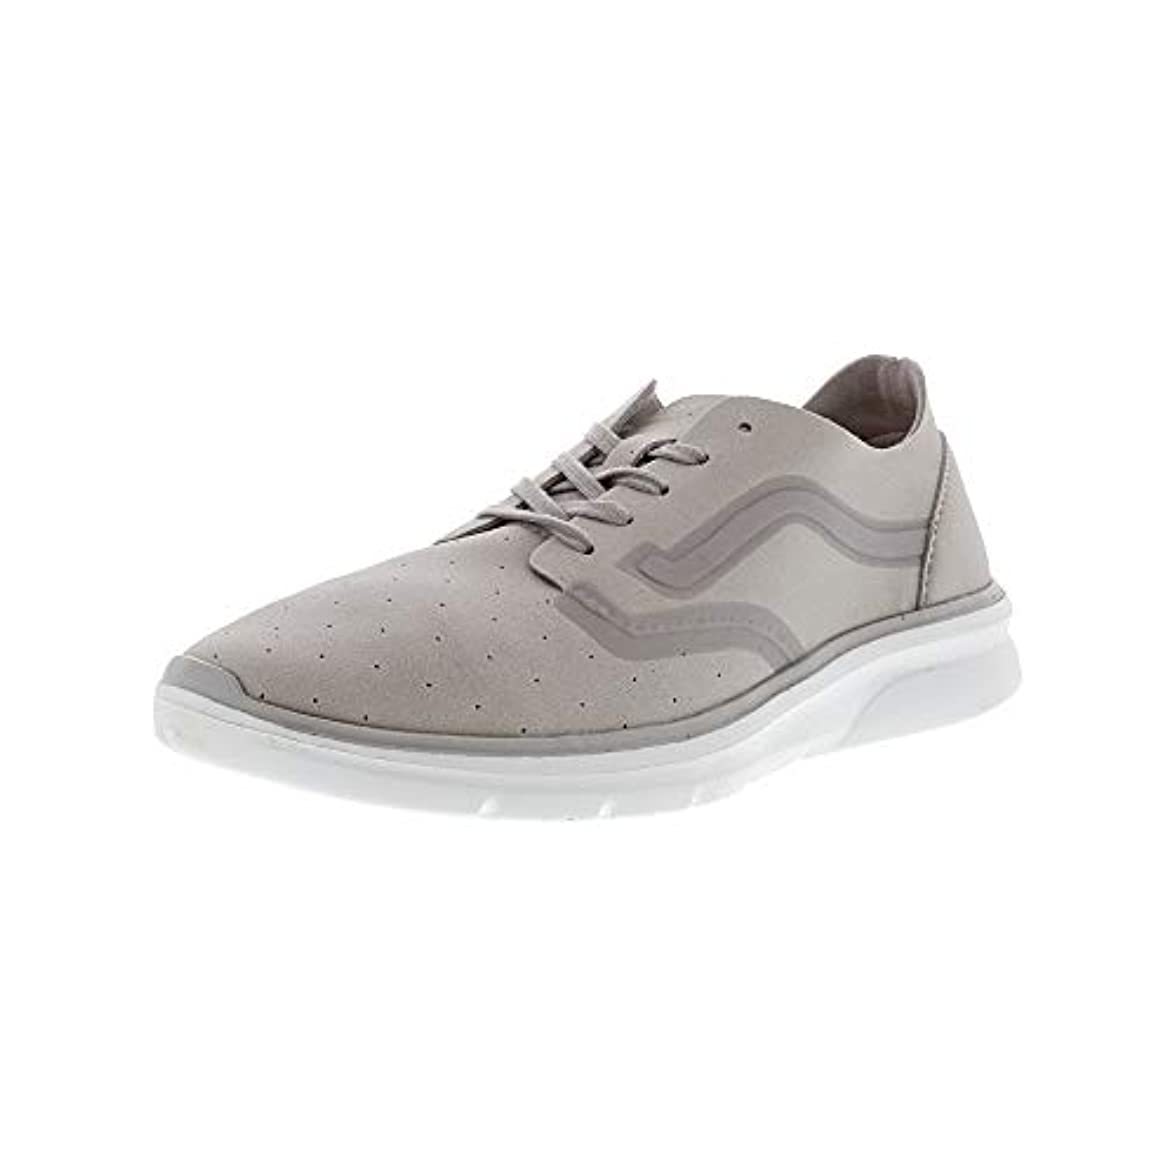 Vans Iso 2 Rapidweld Perforated Ankle-high Skateboarding Shoe